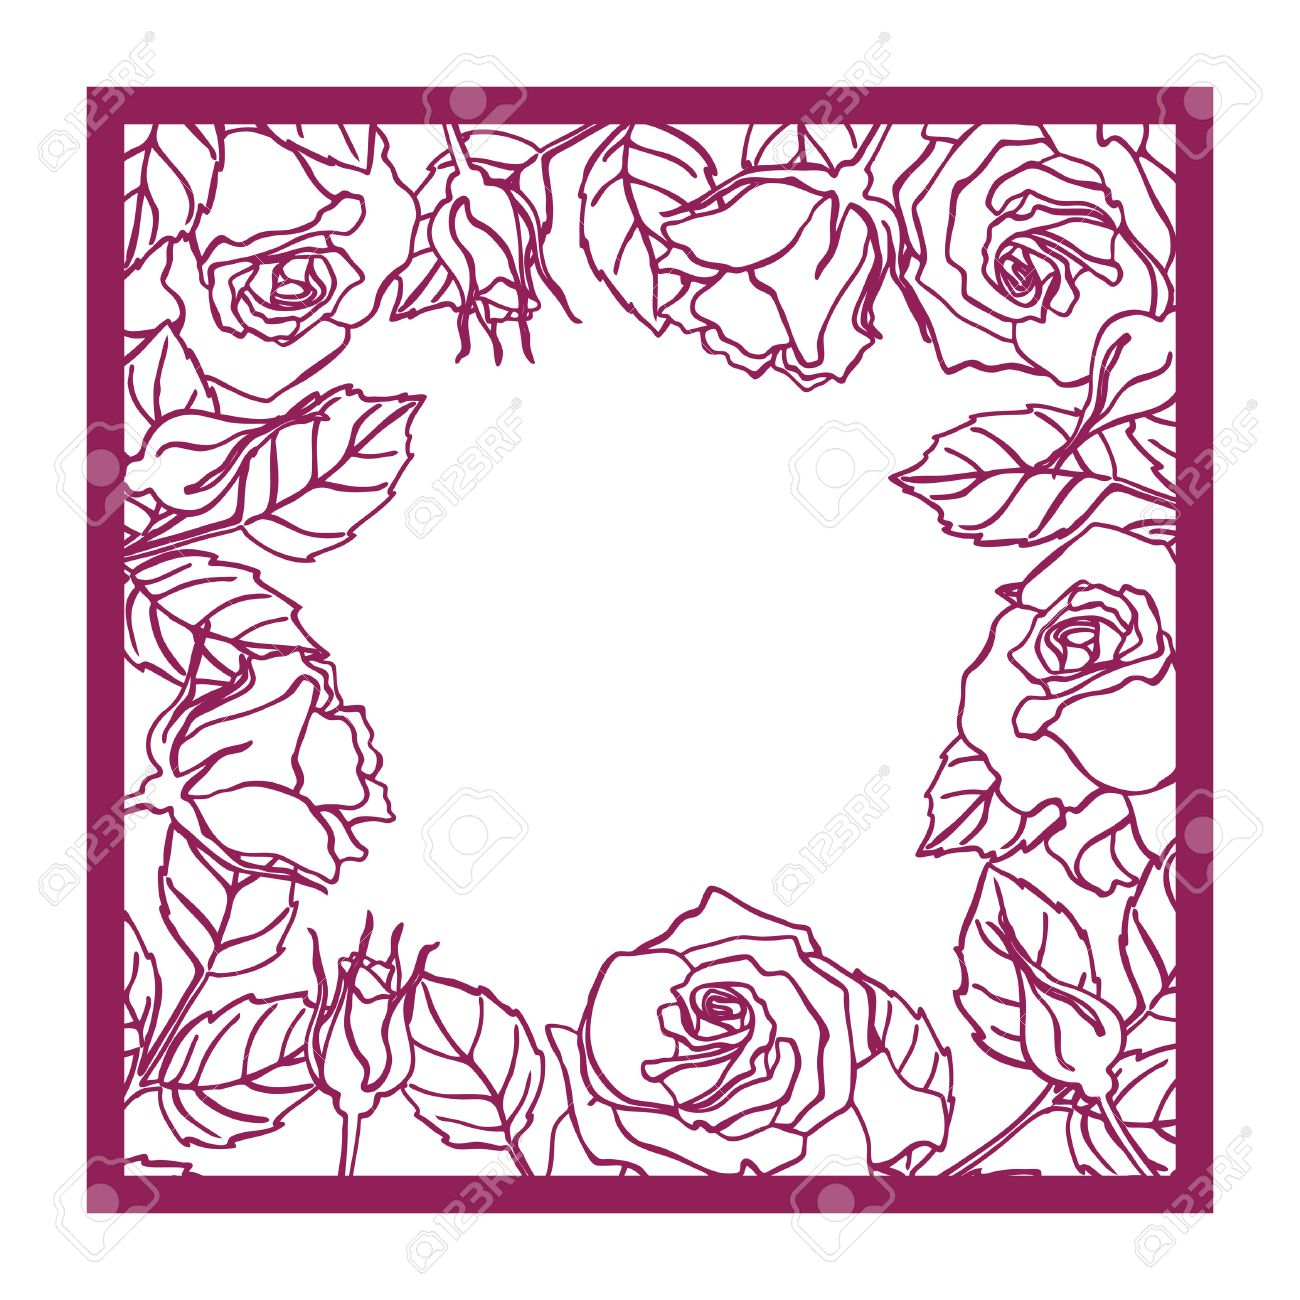 Laser Cut Vector Rose Square Frame Cutout Pattern Silhouette With